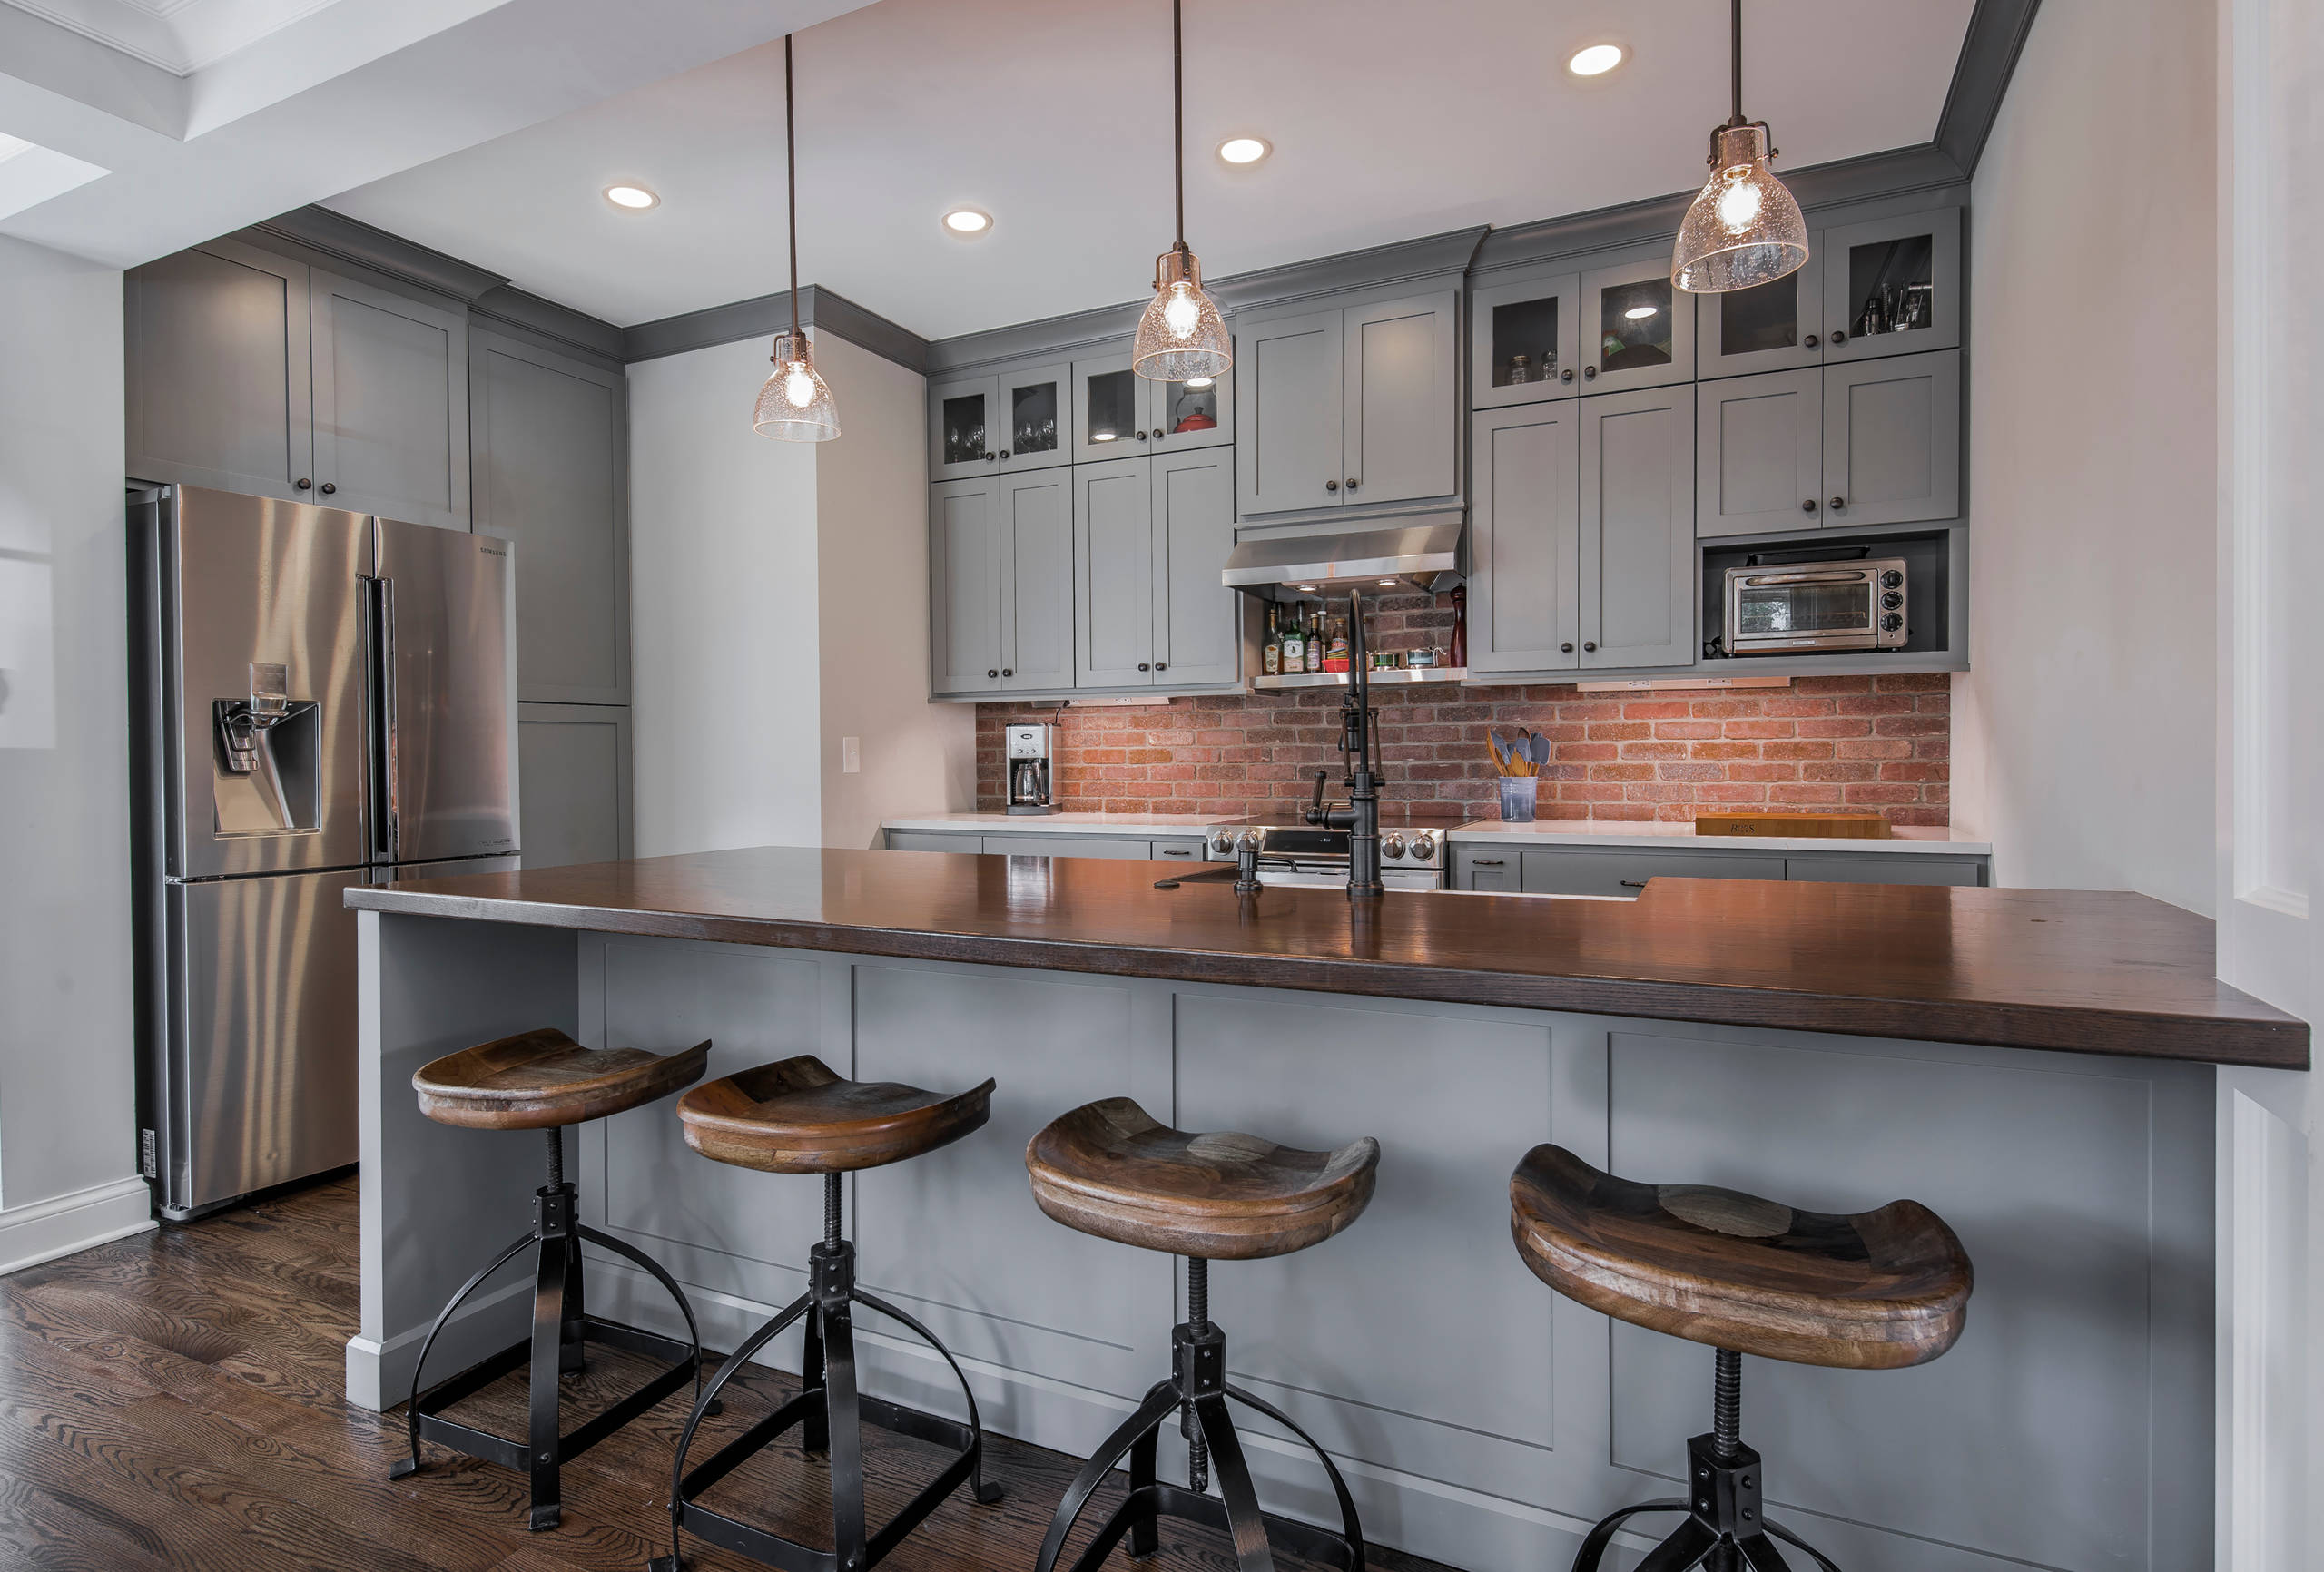 75 Beautiful Kitchen With Gray Cabinets And Red Backsplash Pictures Ideas June 2021 Houzz